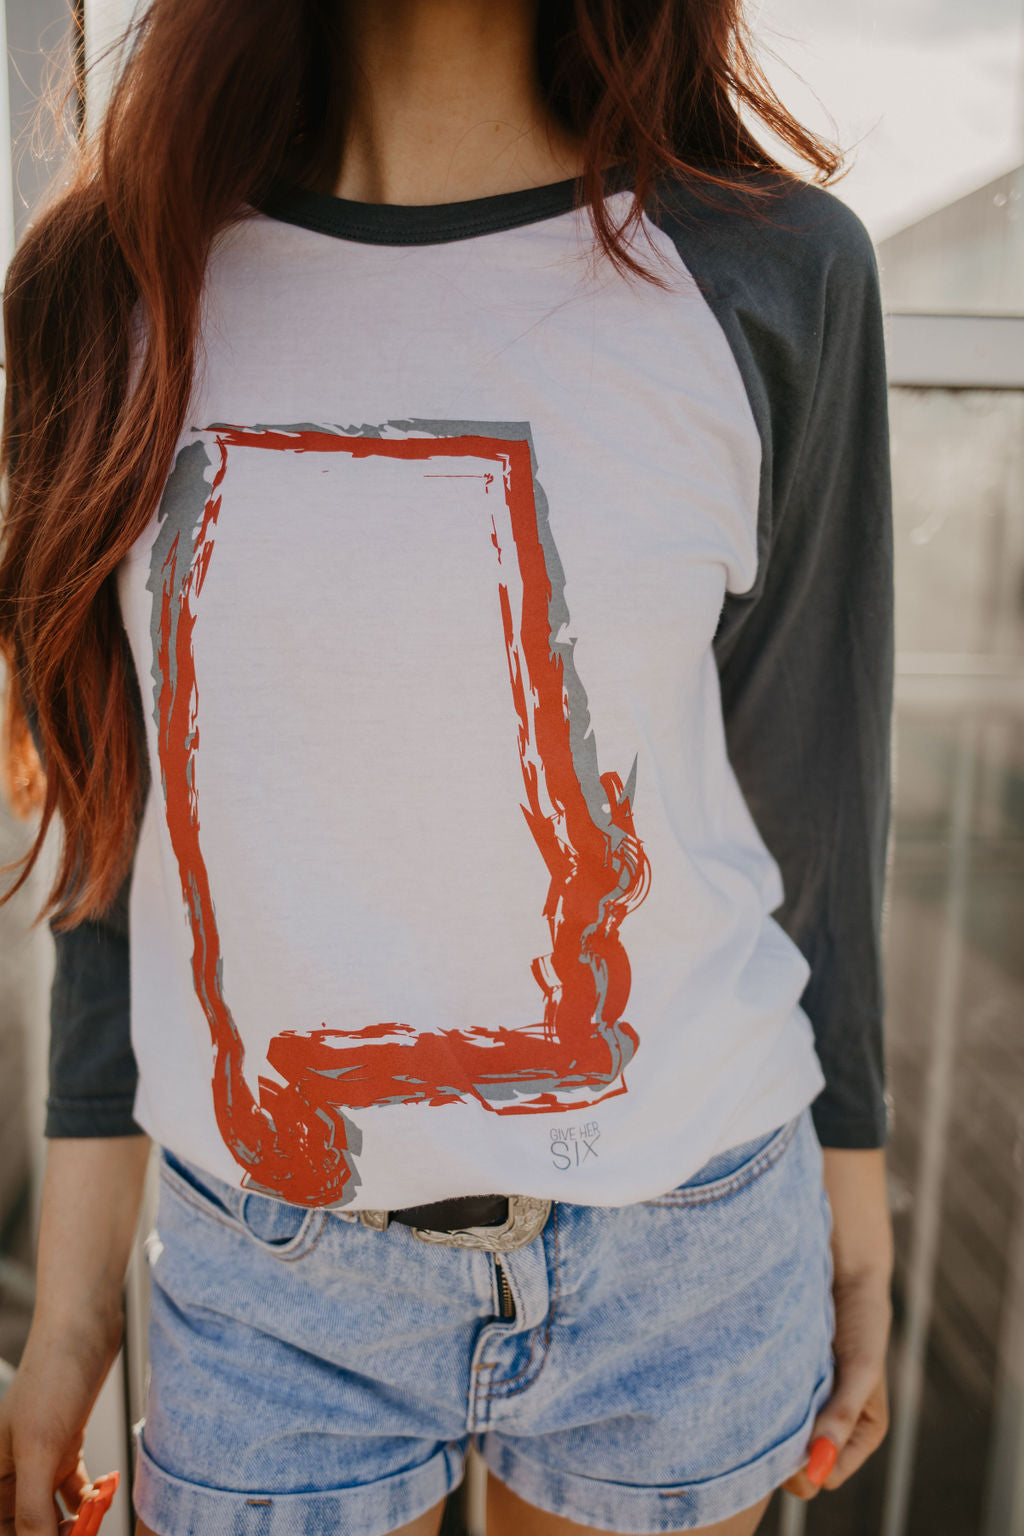 AL Outline Baseball Tee